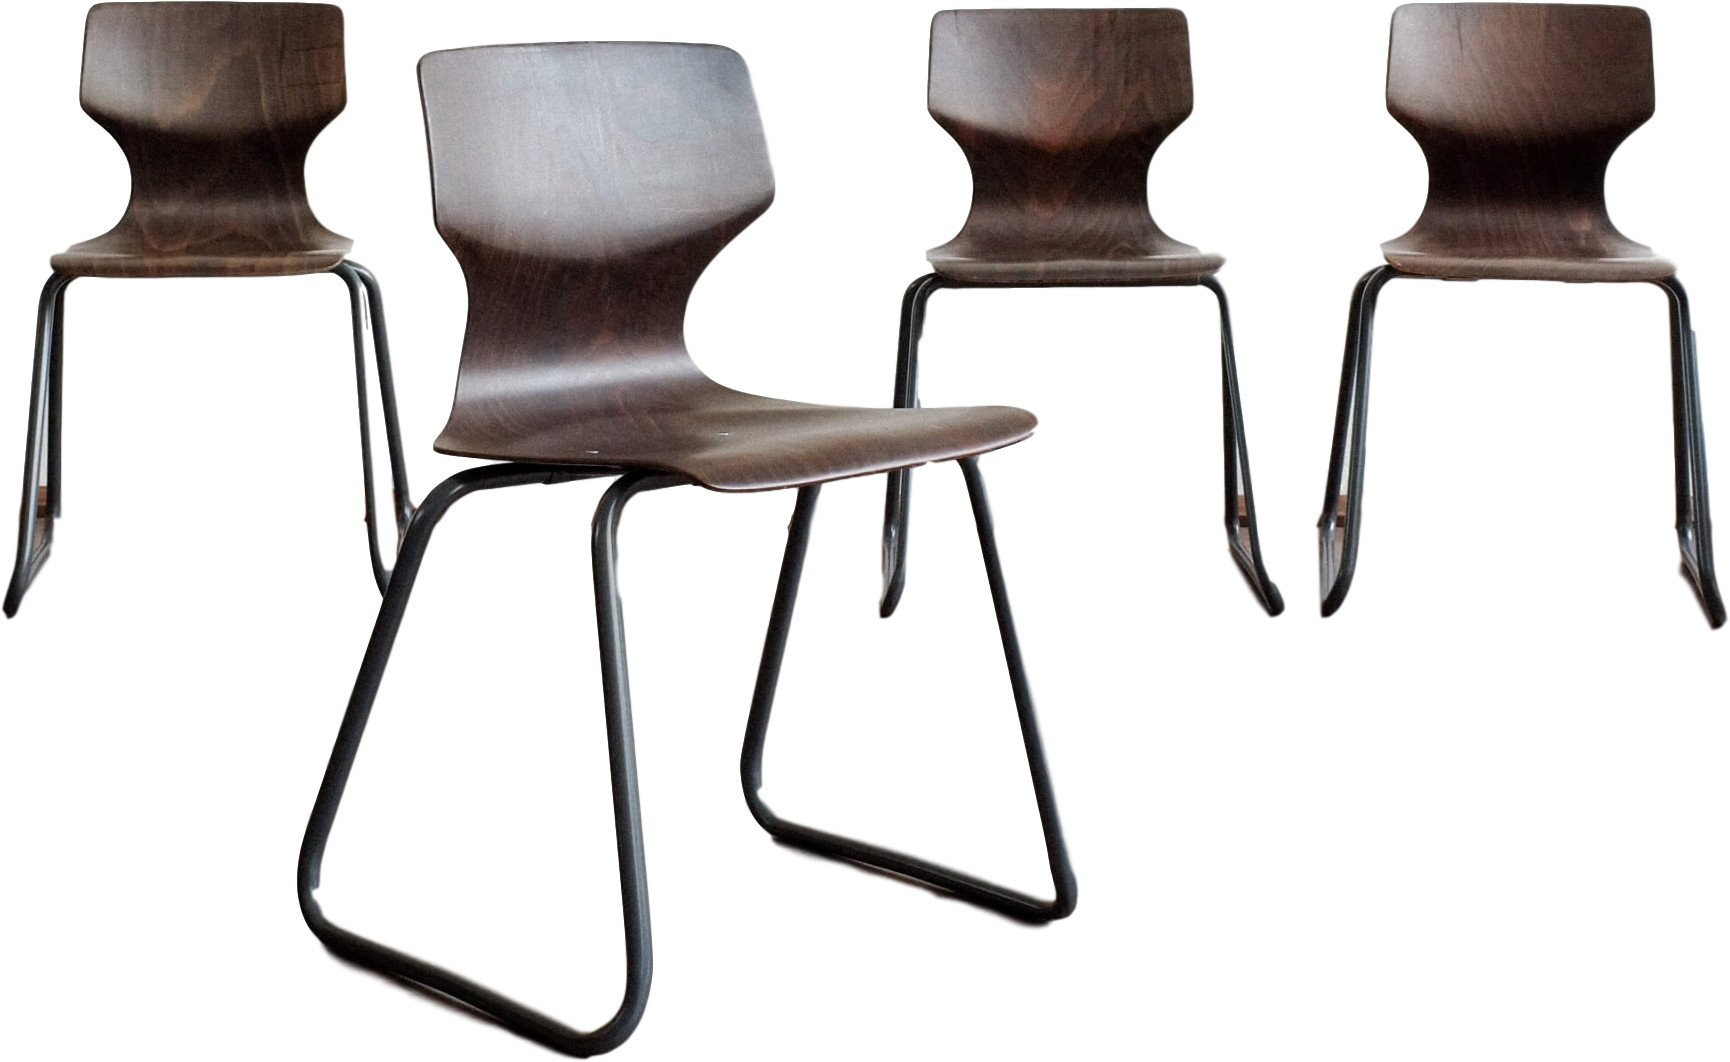 Set of Four Chairs by E. Flototto for Flototto, Germany, 1970s